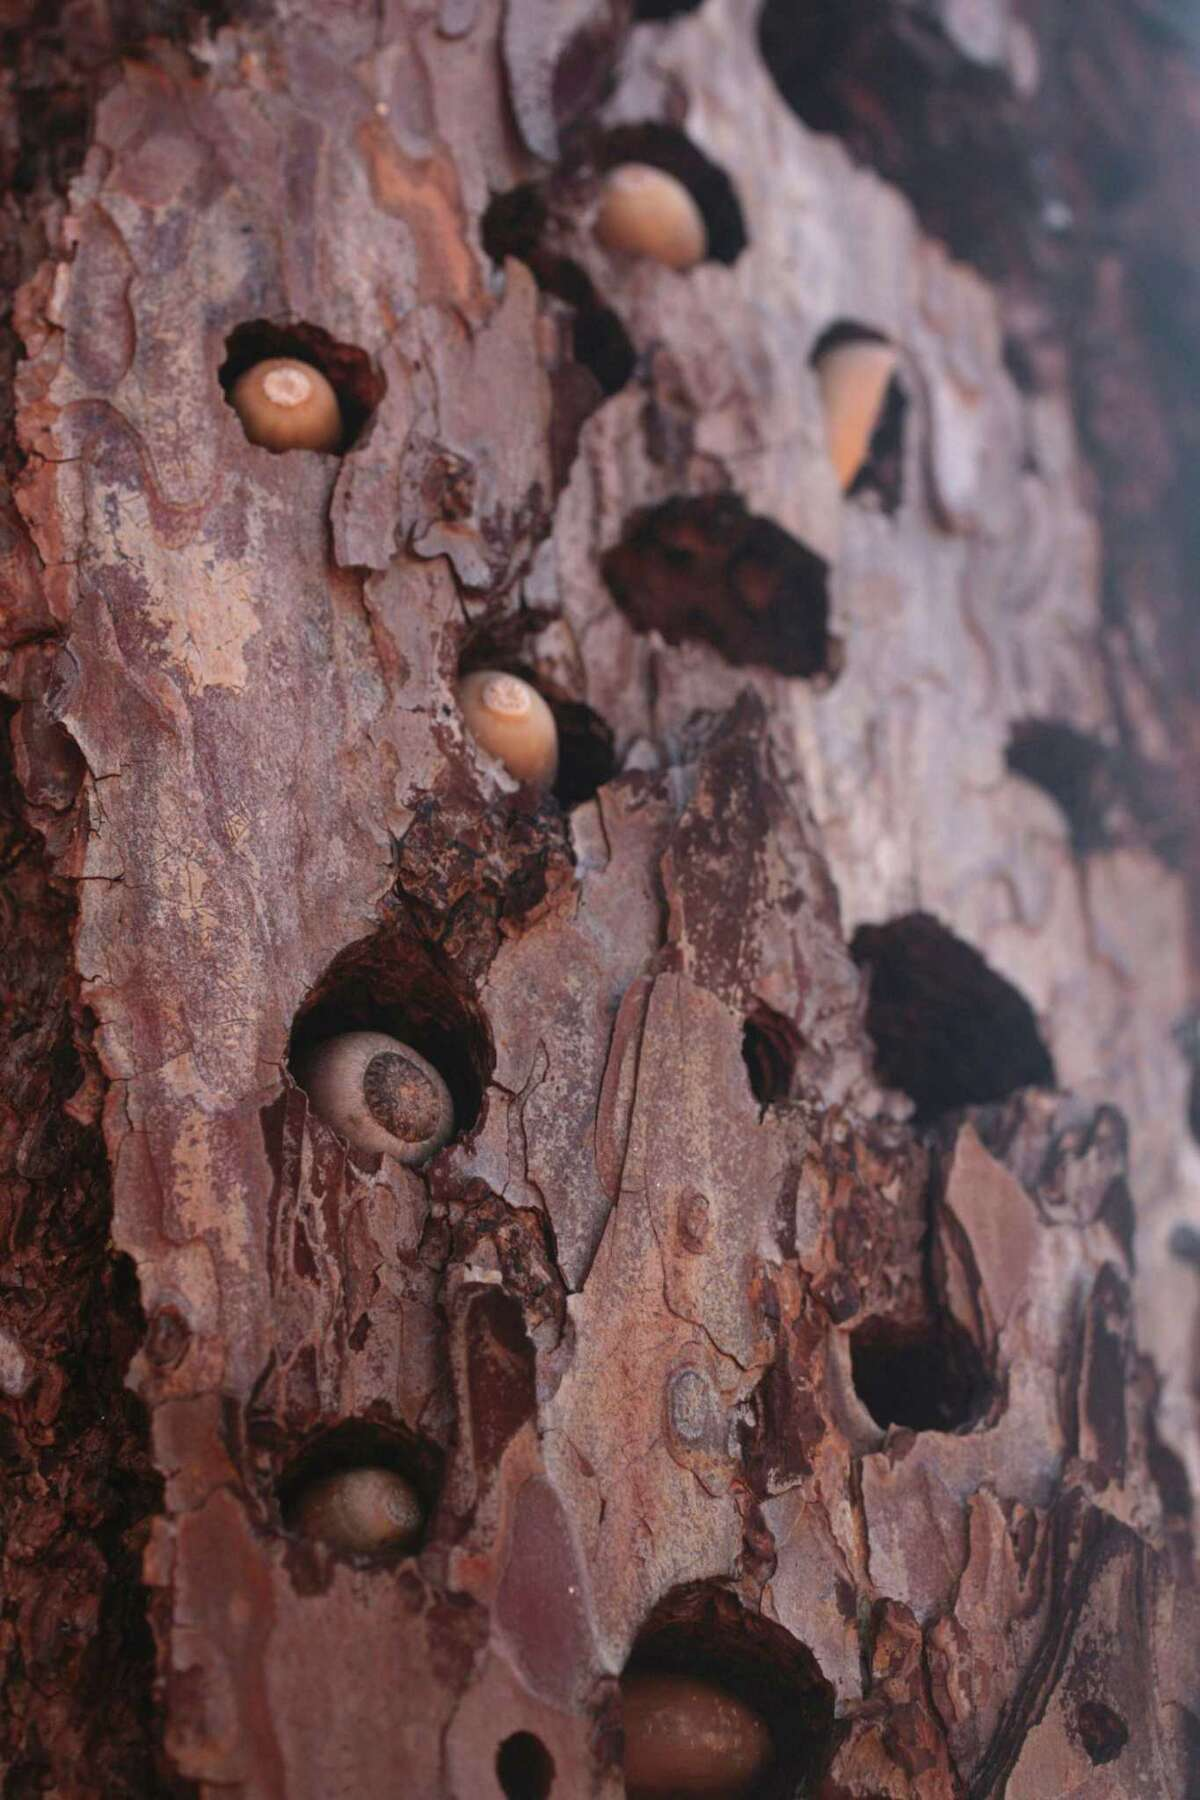 Acorns in a tree trunk in an area of Foss Valley that burned in last year's Glass Fire.